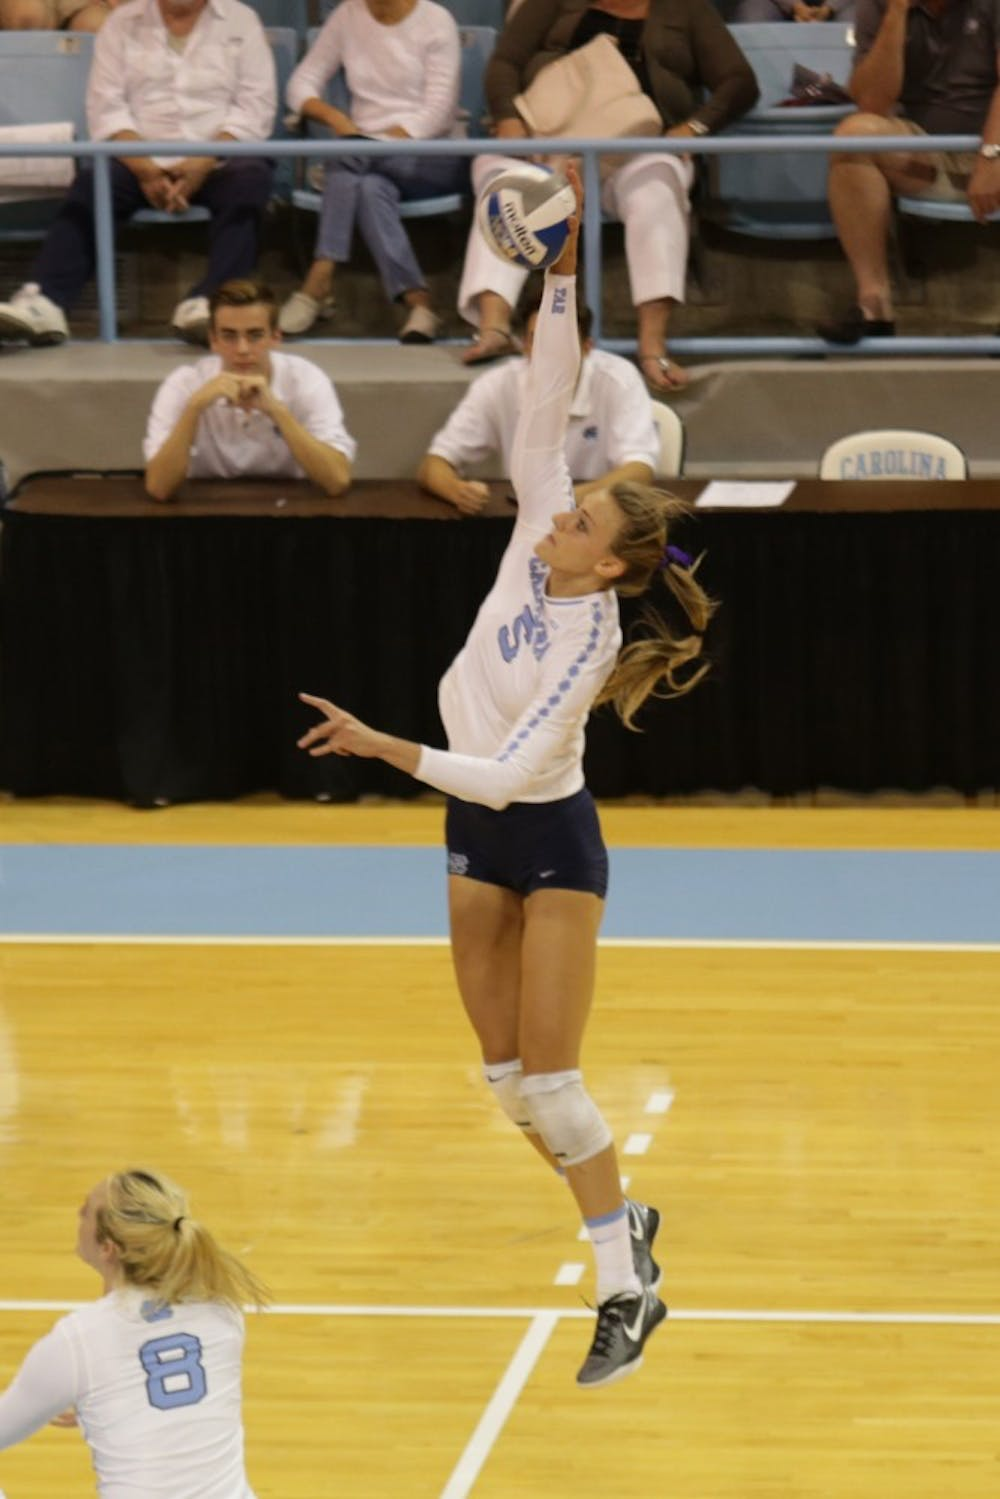 <p>Redshirt senior Taylor Fricano (5) jumps for a hit against LIU Brooklyn on Sept. 8 in Carmichael Arena</p>